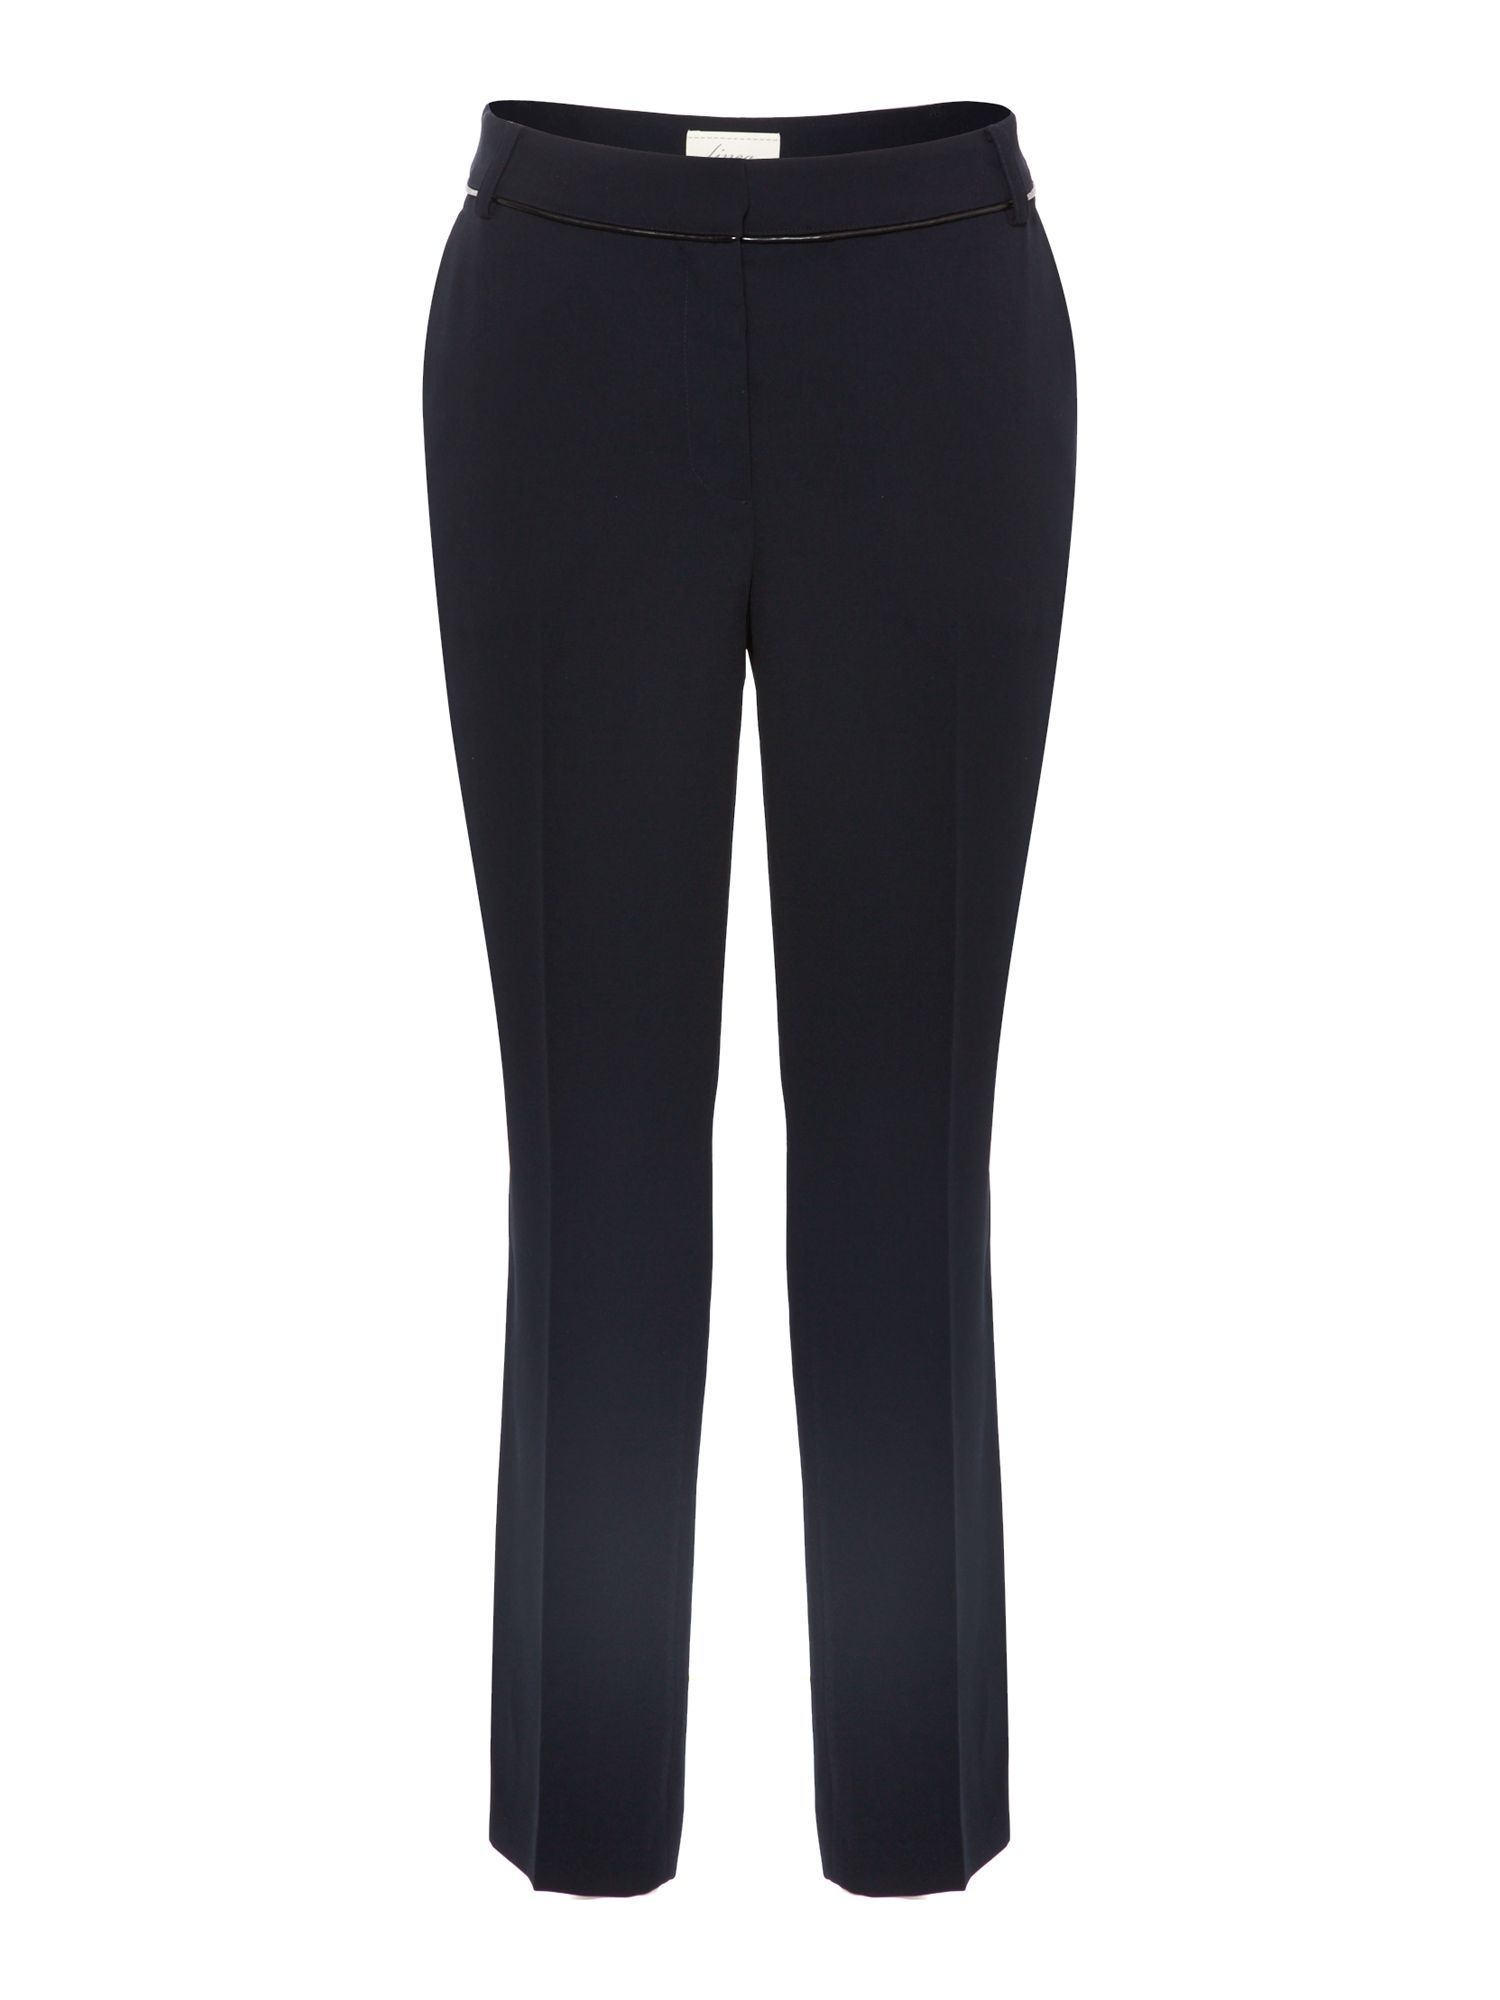 Pu trim slim leg trouser